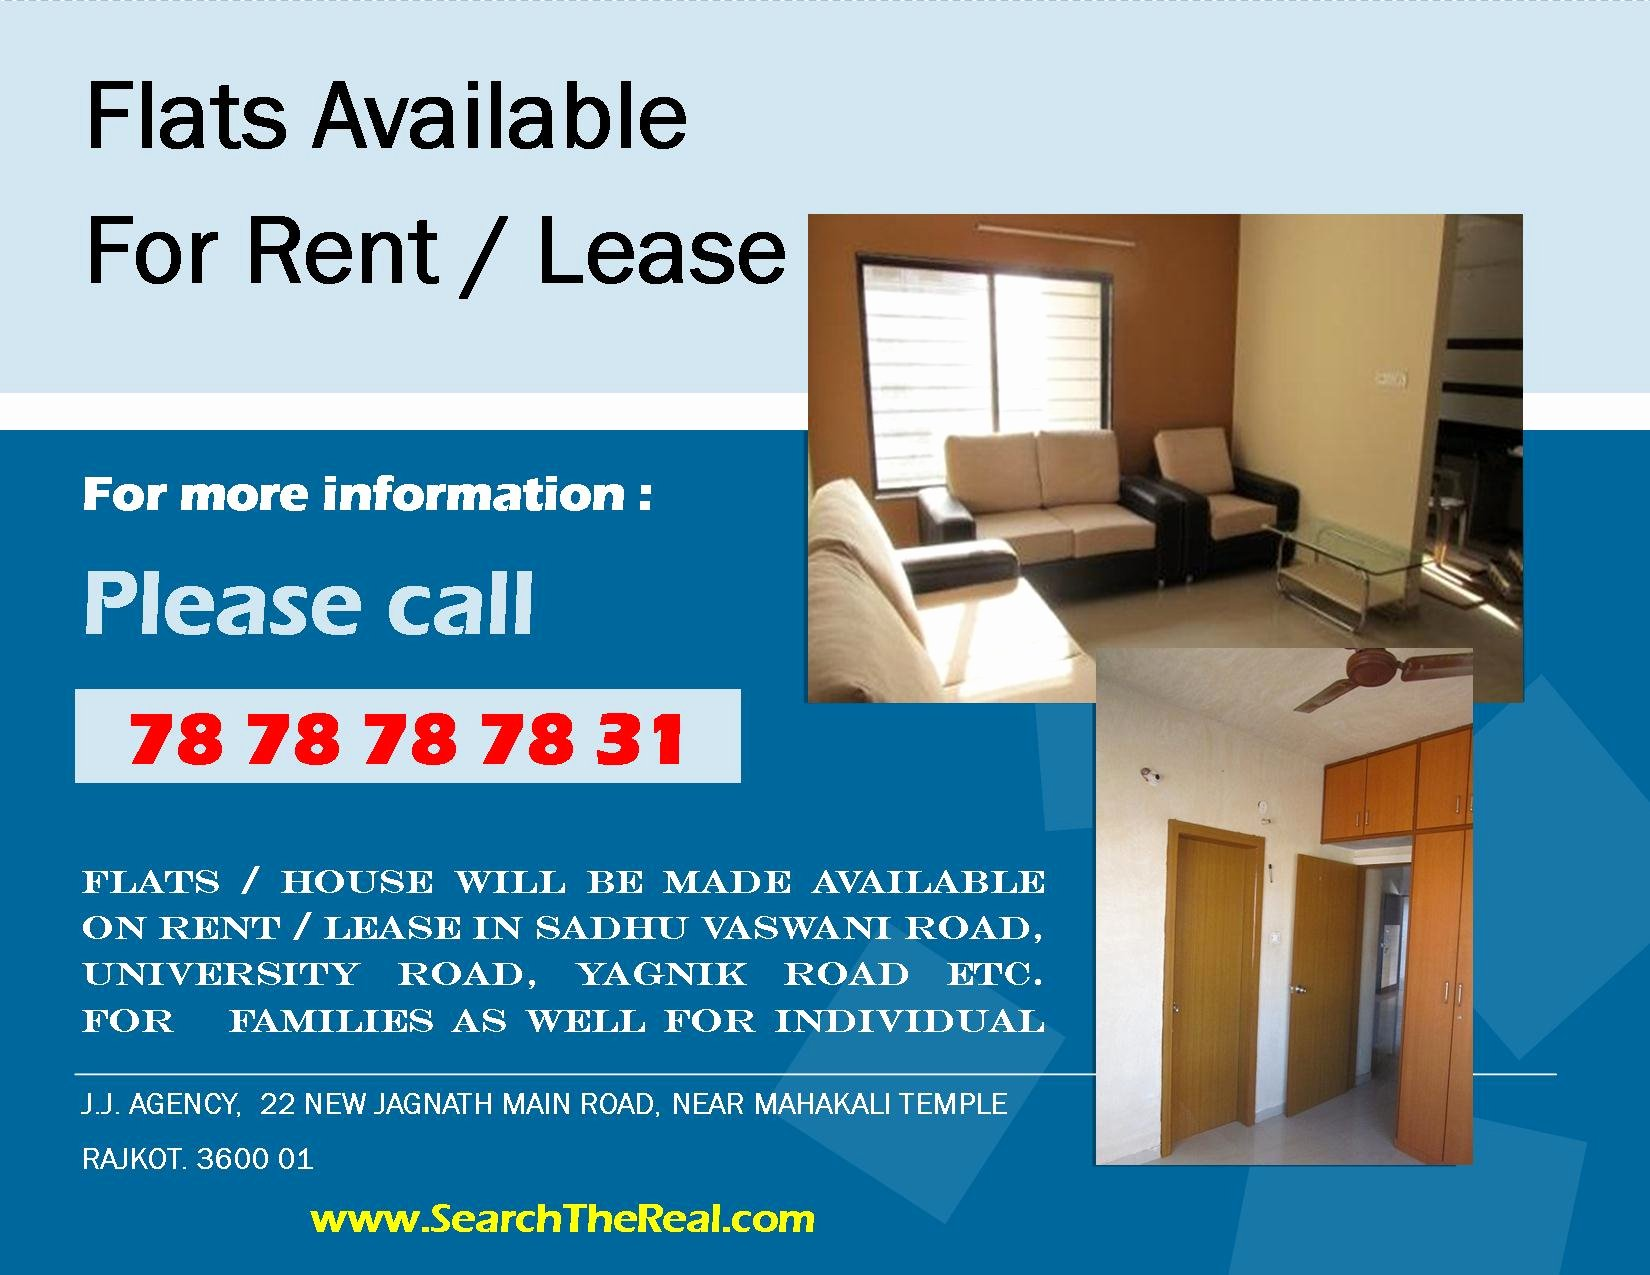 Room for Rent Flyers Beautiful Flat for Rent In Rajkot